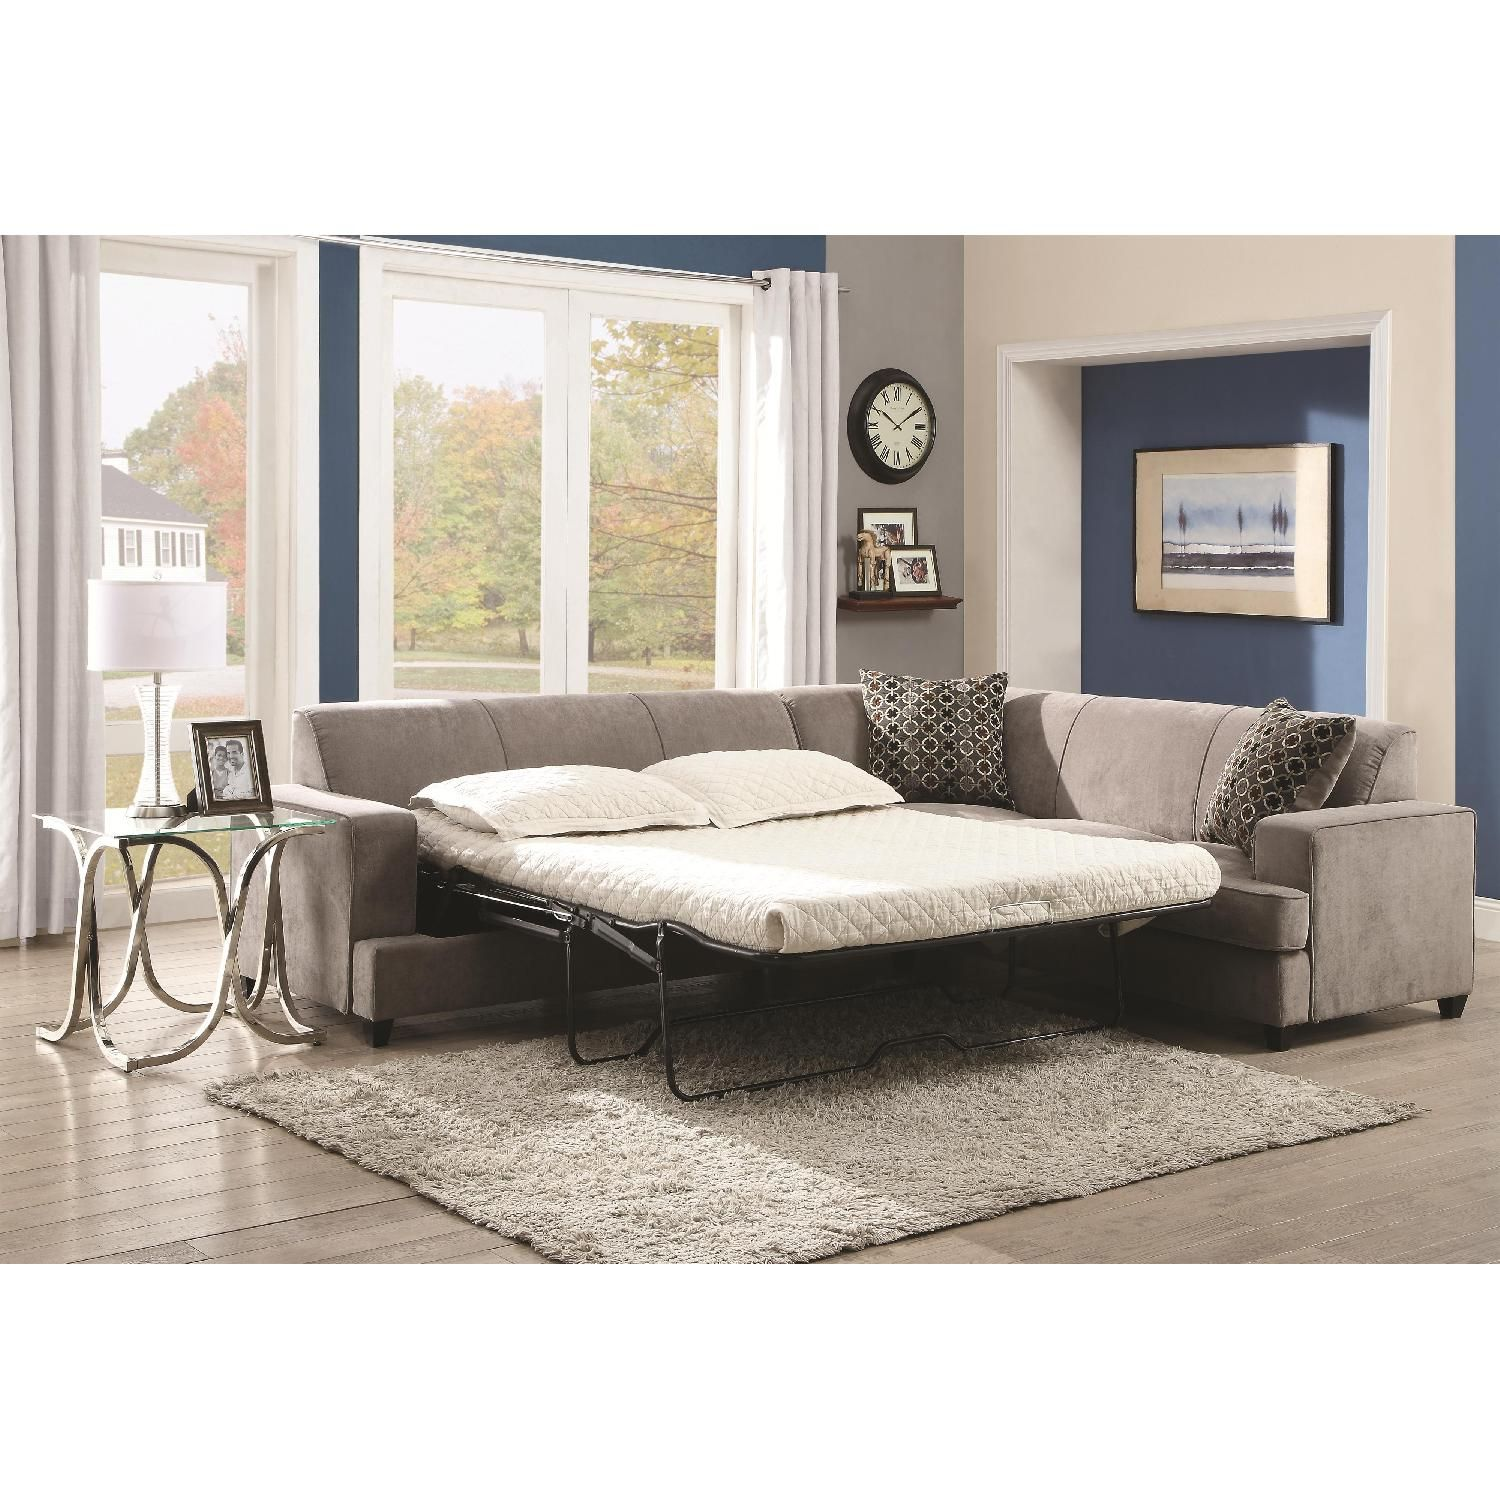 L Shaped Couch With Pullout Sofa Bed Grey Sectional Sofa Sectional Sleeper Sofa Sectional Sofa Couch